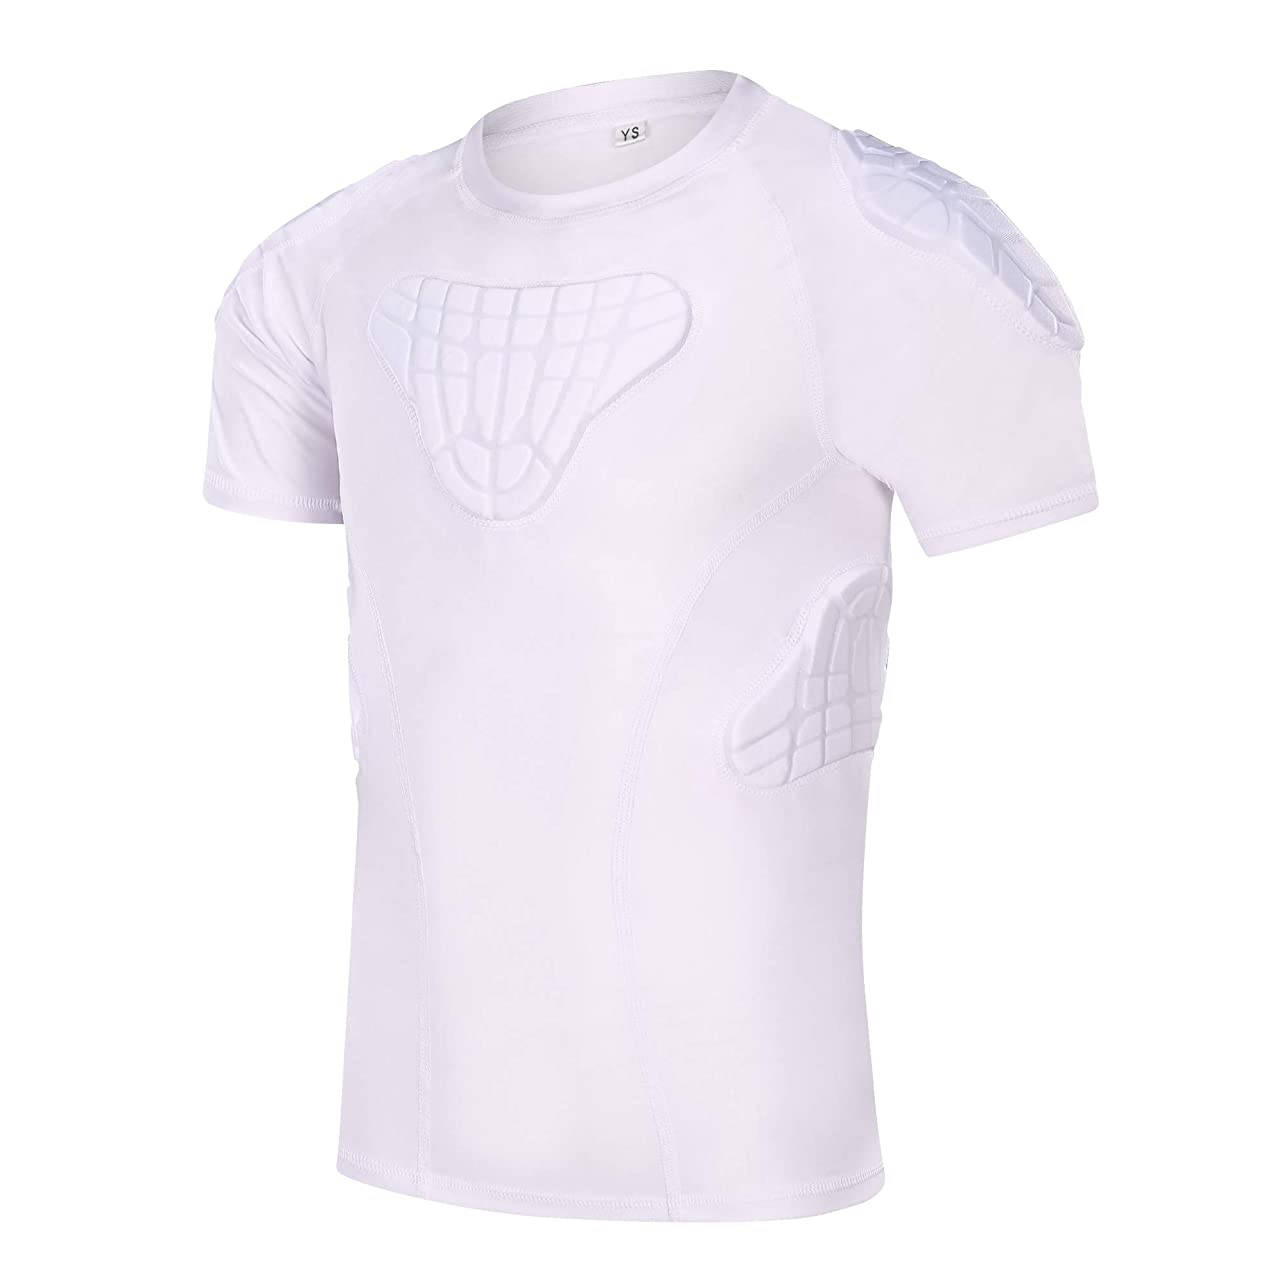 DGXINJUN Padded Compression Shirt Chest Protector Parkour Extreme Exercise Suit for Boys laffiymhyhp69